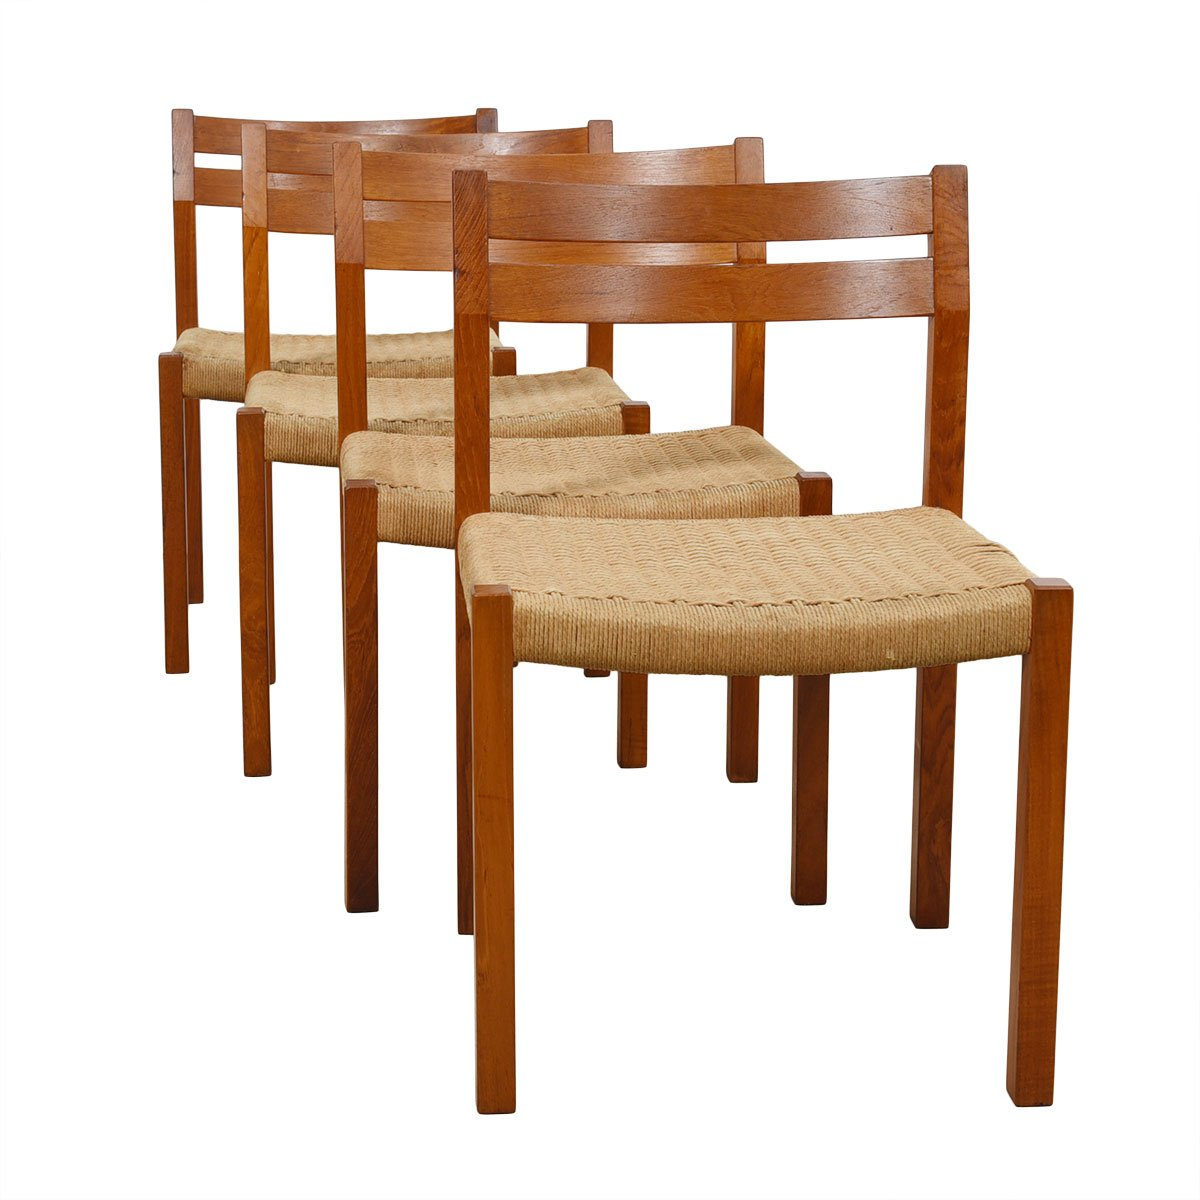 Set of 4 Danish Cord & Teak Dining Chairs